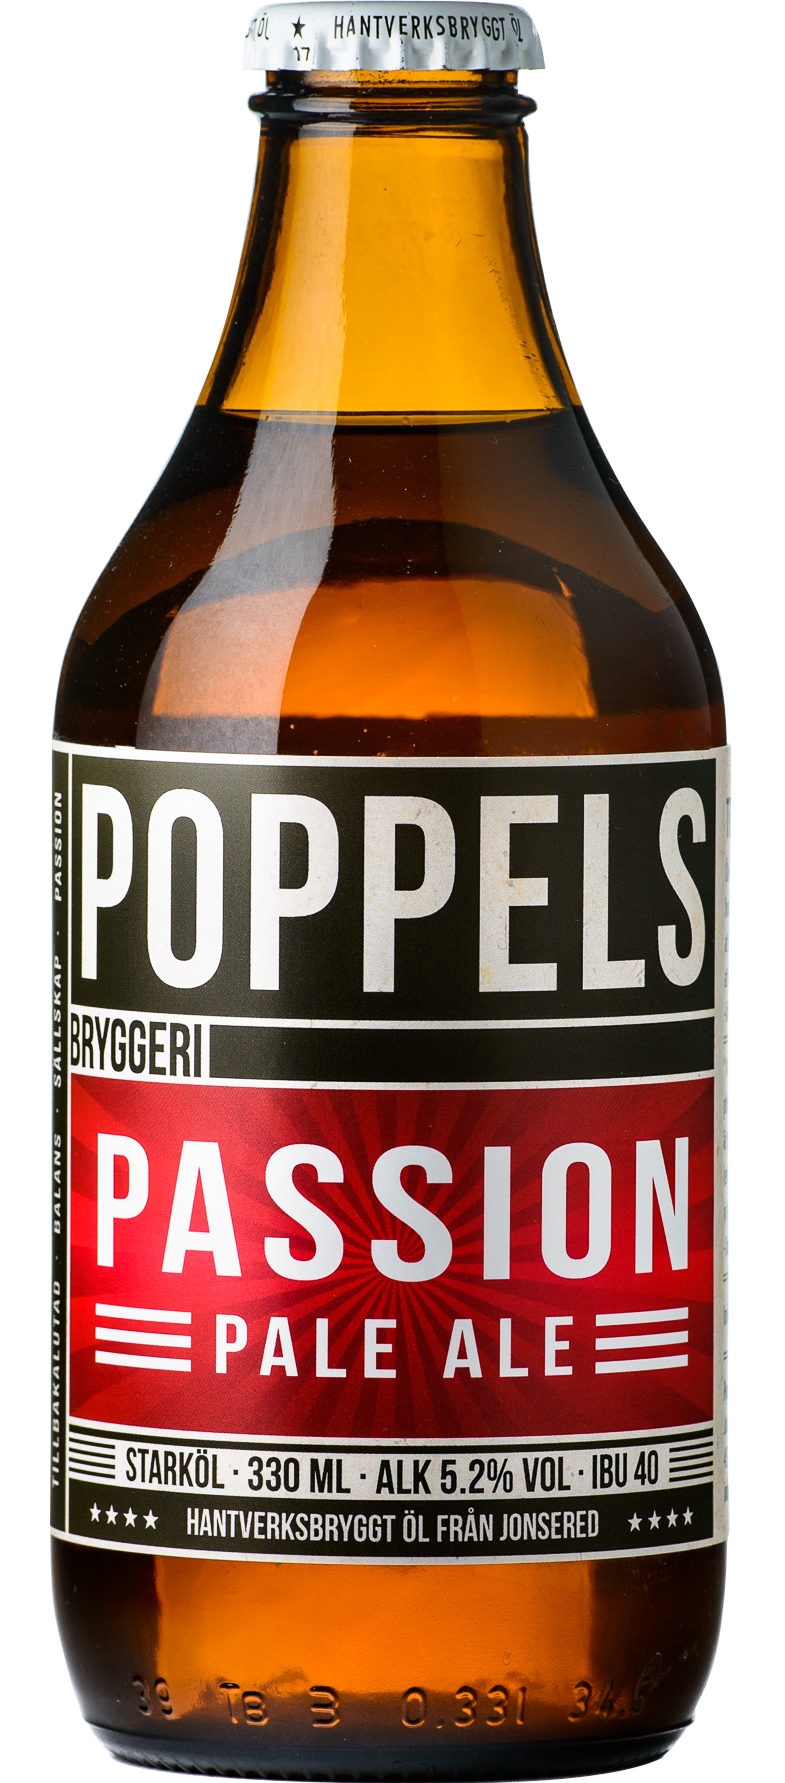 PASSION PALE ALE 5.2% -